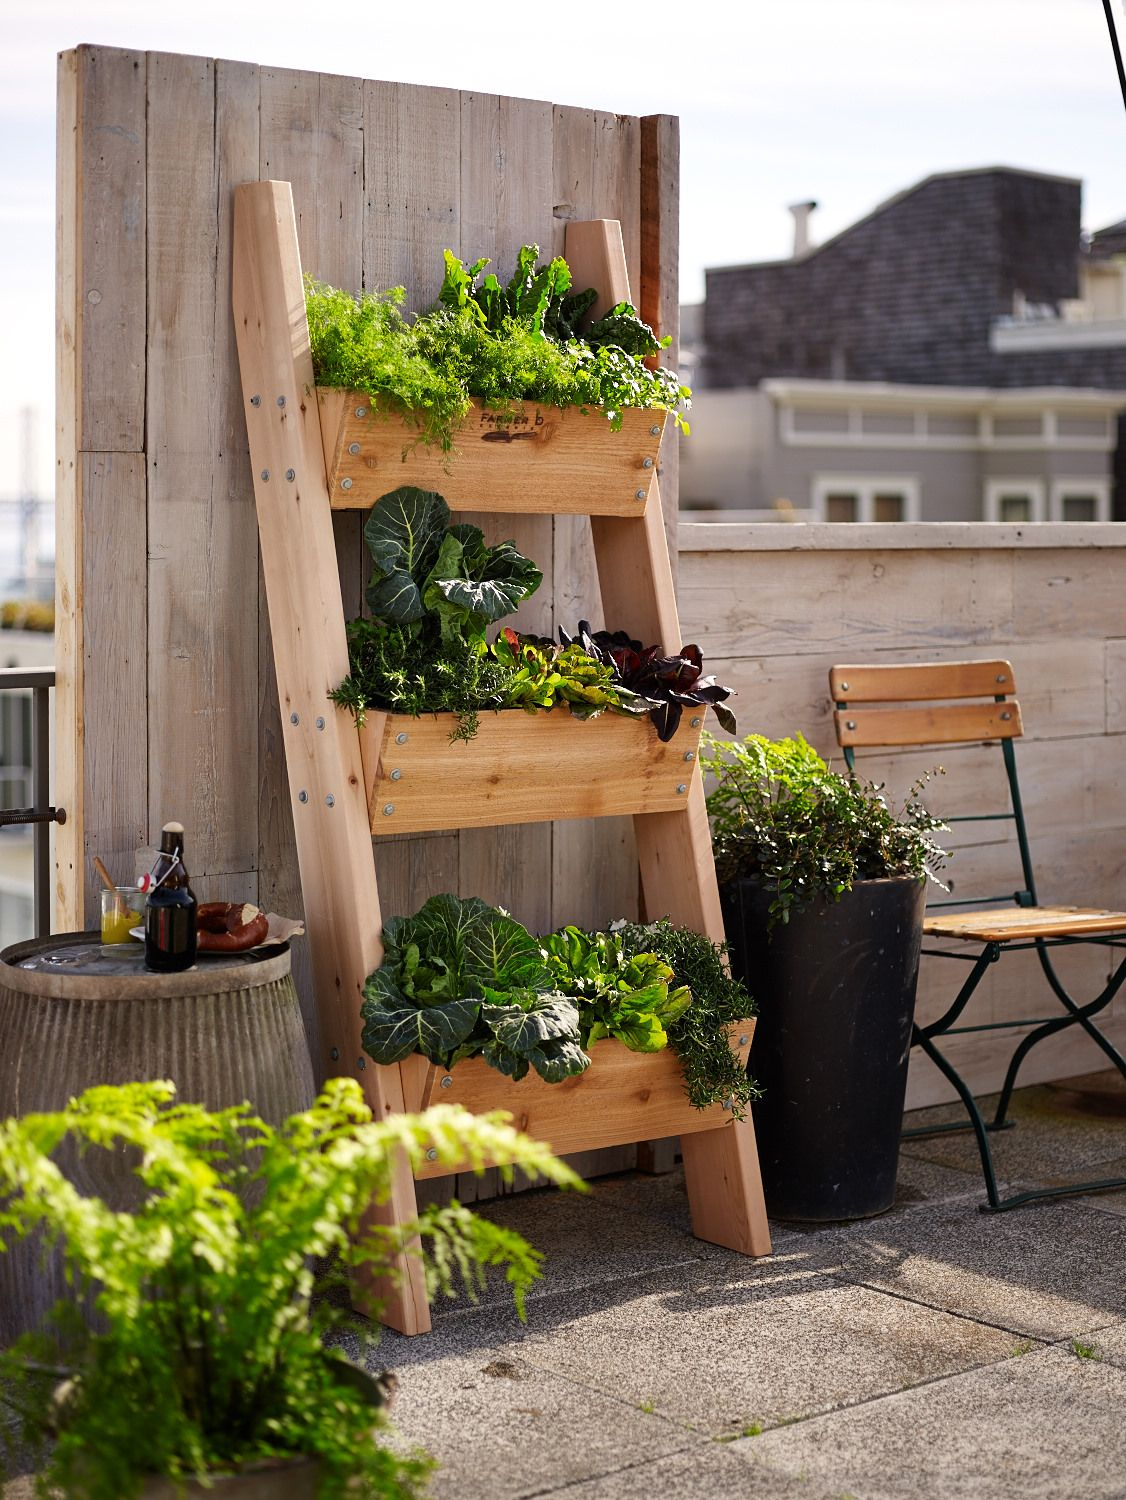 Grow your own herbs and vegetables in compact outdoor spaces ... Round Tiered Herb Garden Design I Html on